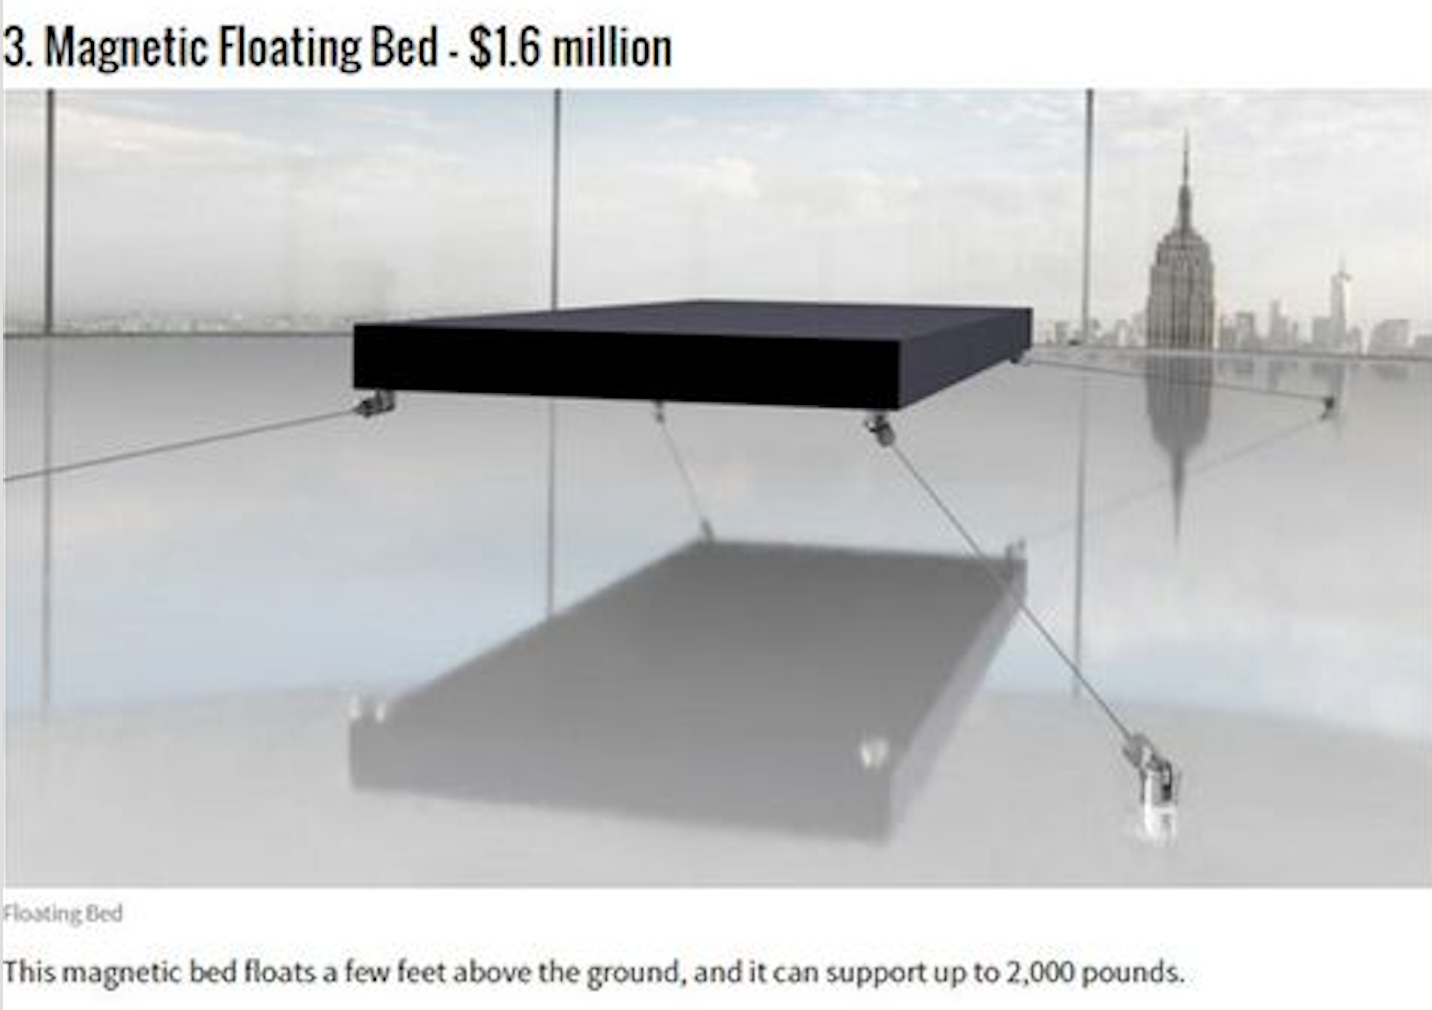 Magnetic floating bed a 1 6 million - 15 Of The Most Expensive Things In The World Download Image Magnetic Floating Bed A 1 6 Million